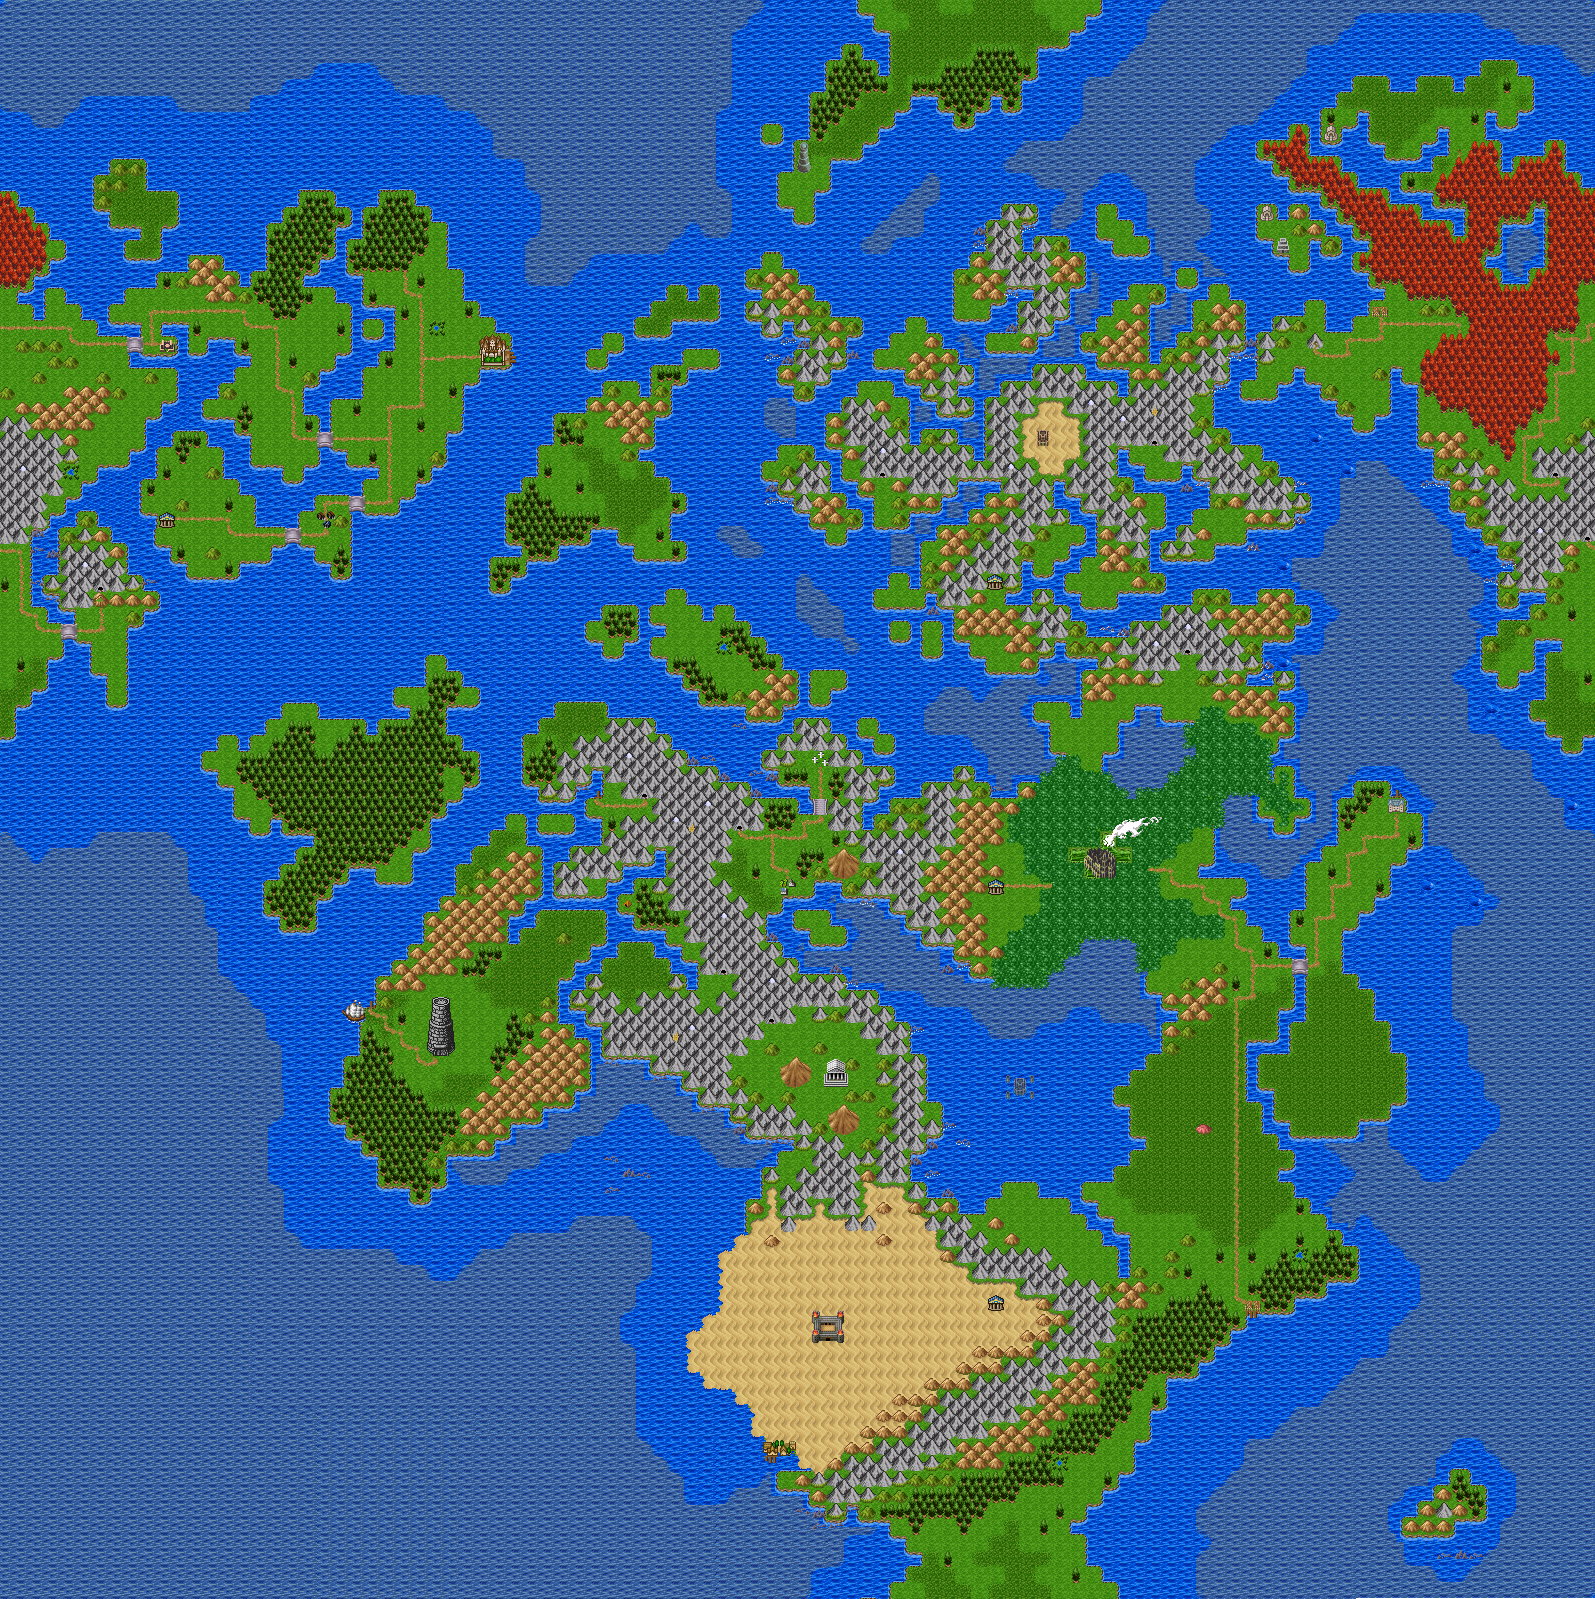 Recondite Images Up To Date Full Size Map Without Names As - World map without names